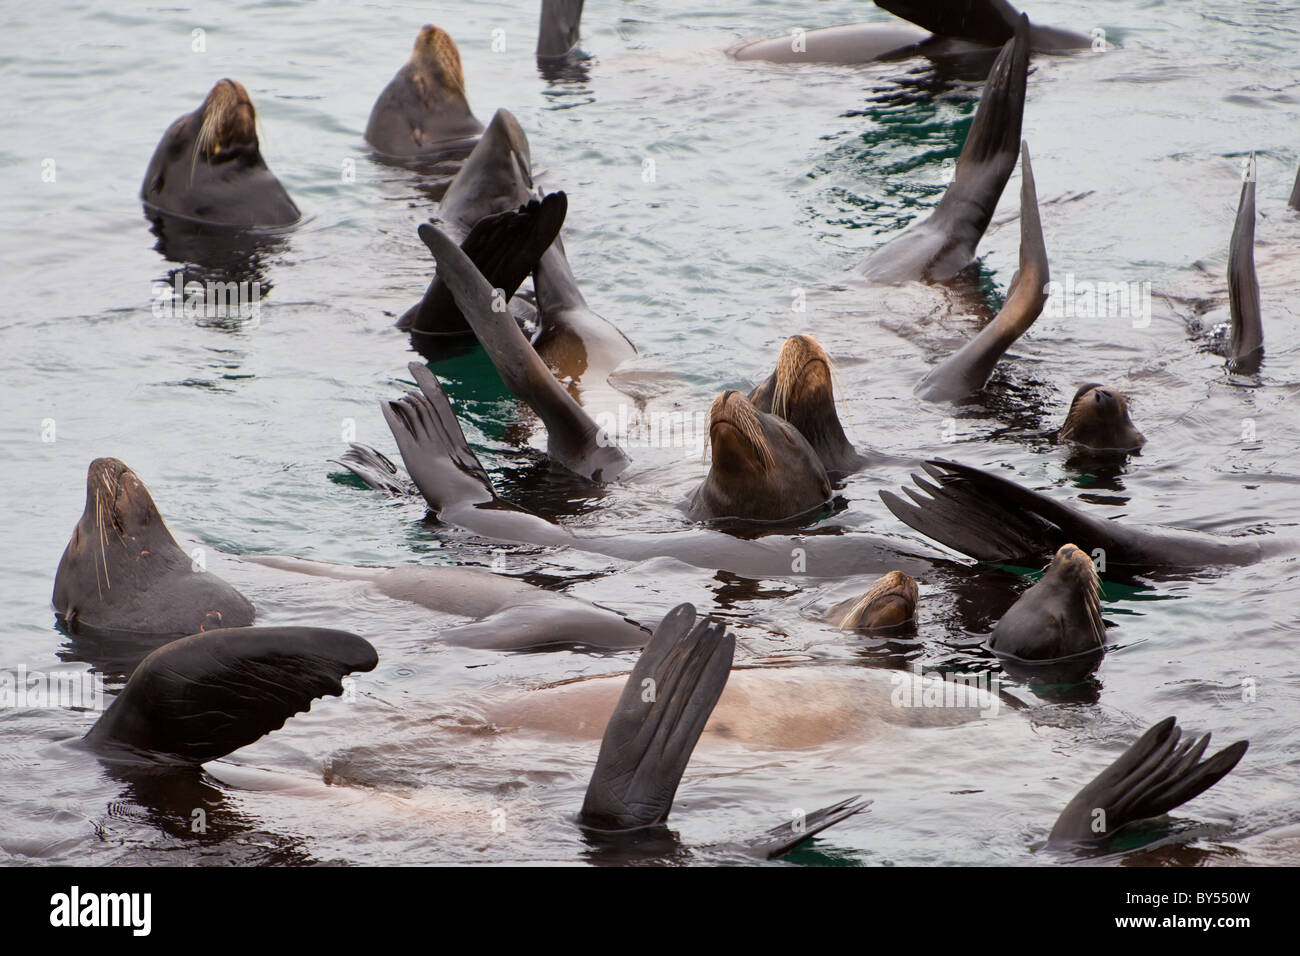 Group of California Sea Lions (Zalophus californianus) with flippers raised to warm themselves in Monterey Bay, - Stock Image